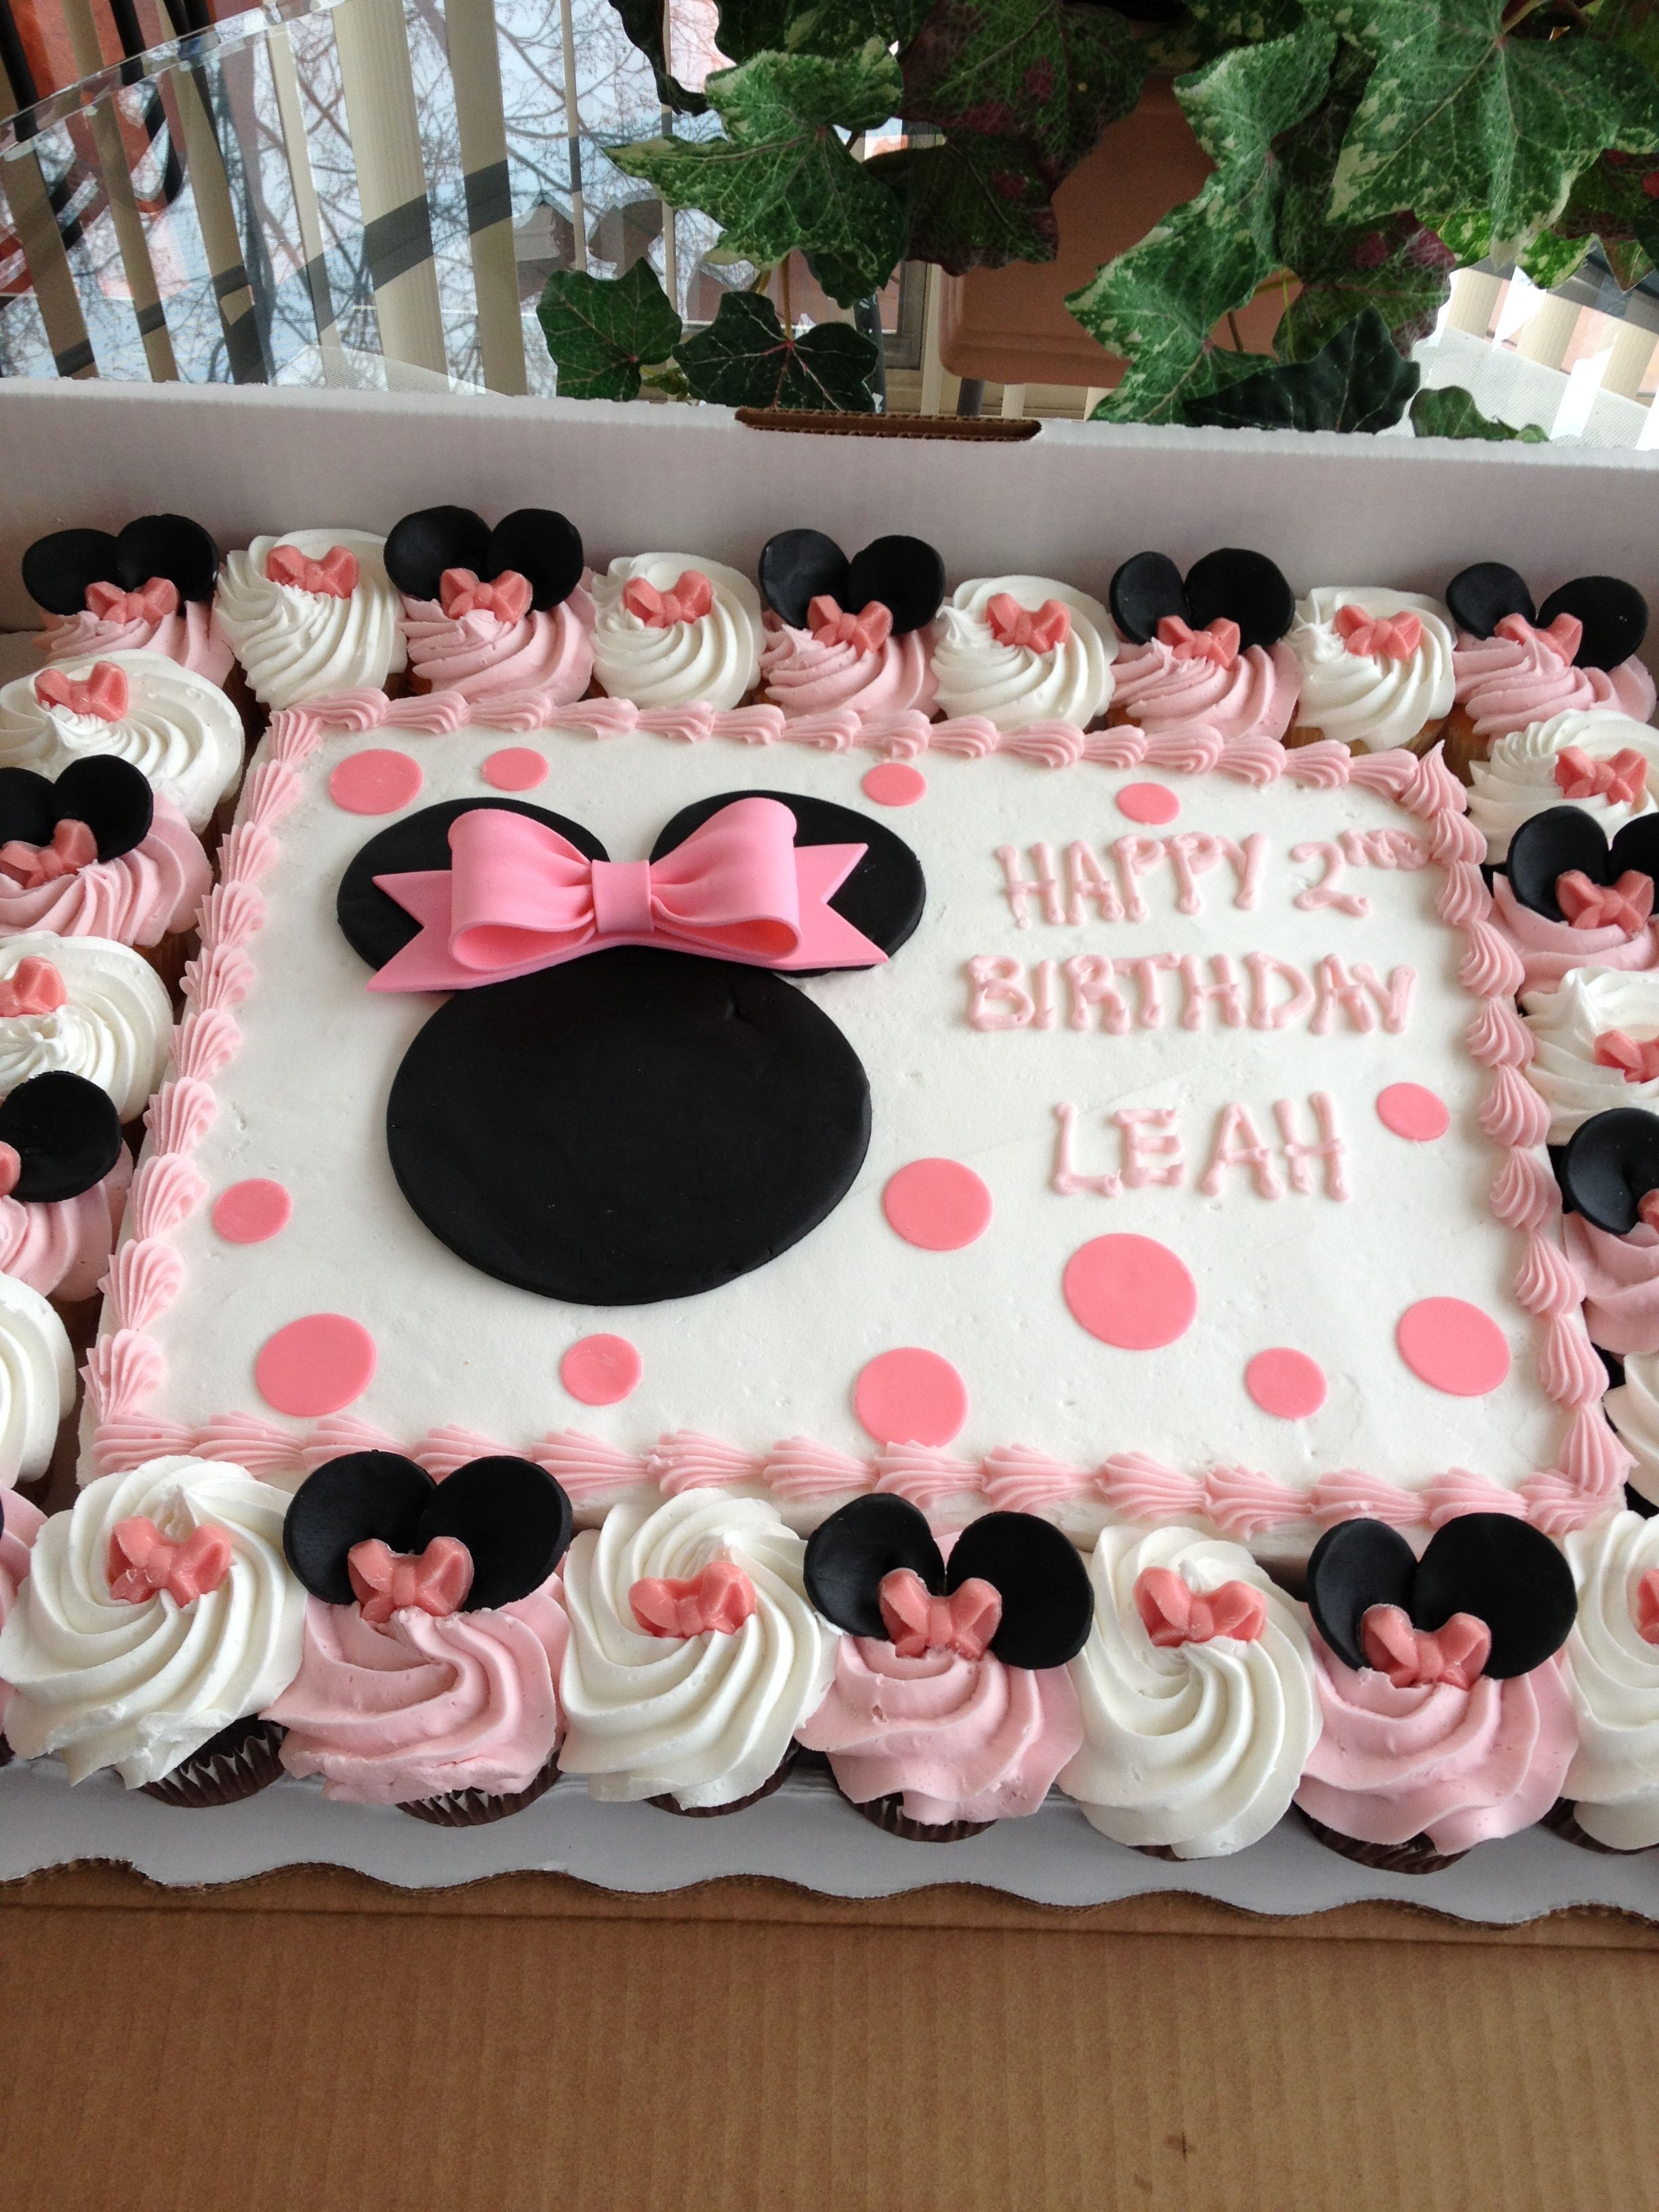 Minnie Mouse Cake After Not Wanting To Spend A Fortune On This Is What We Did Cupcakes Large Bow And Icing By SAMs Club